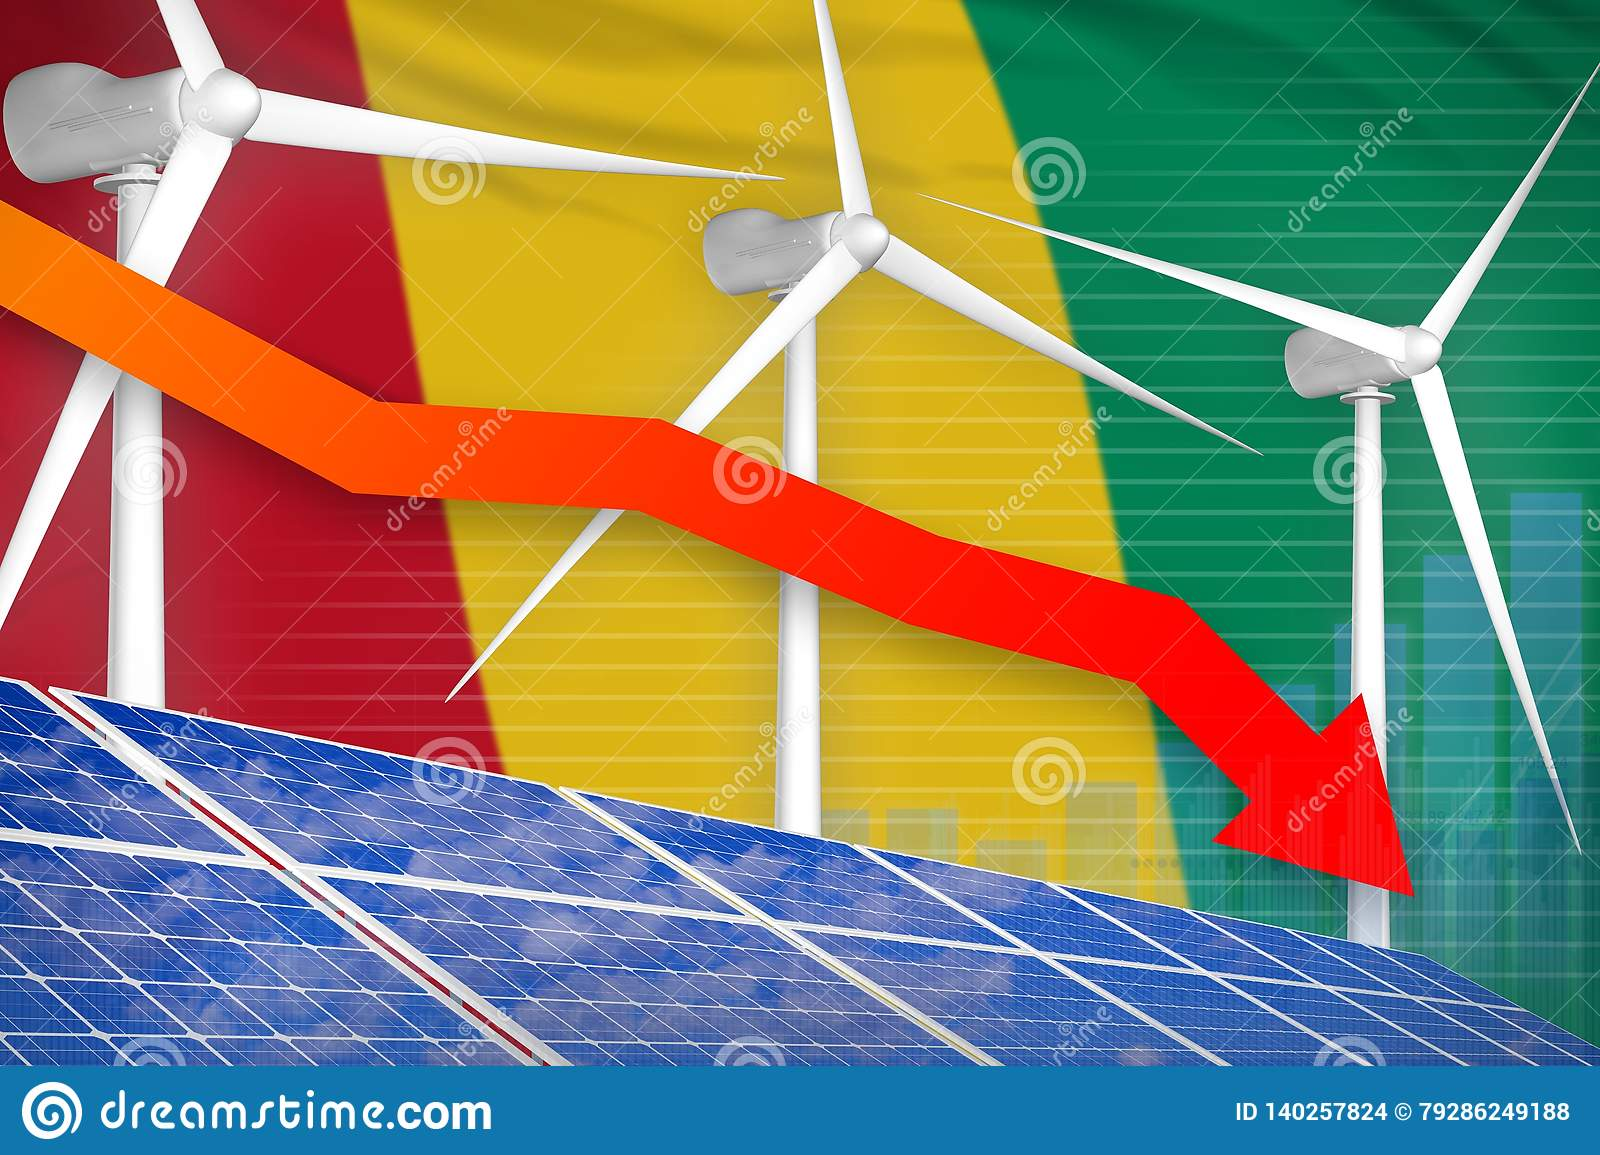 Guinea Solar And Wind Energy Lowering Chart, Arrow Down